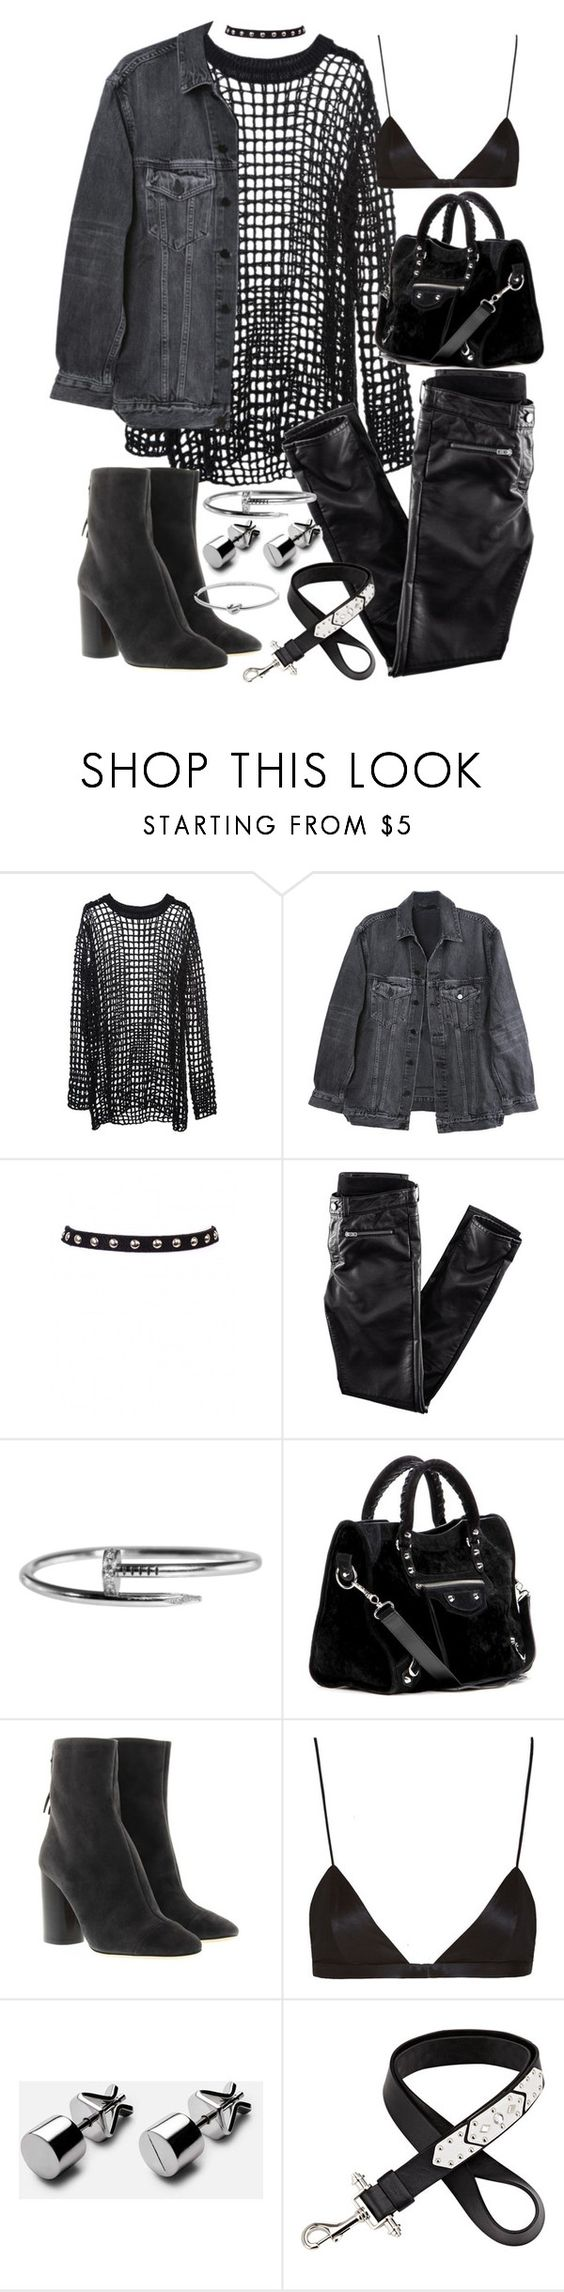 """""""Untitled #20254"""" by florencia95 ❤ liked on Polyvore featuring Y/Project, H&M, Balenciaga, Étoile Isabel Marant, NYX, Givenchy and Michael Kors"""